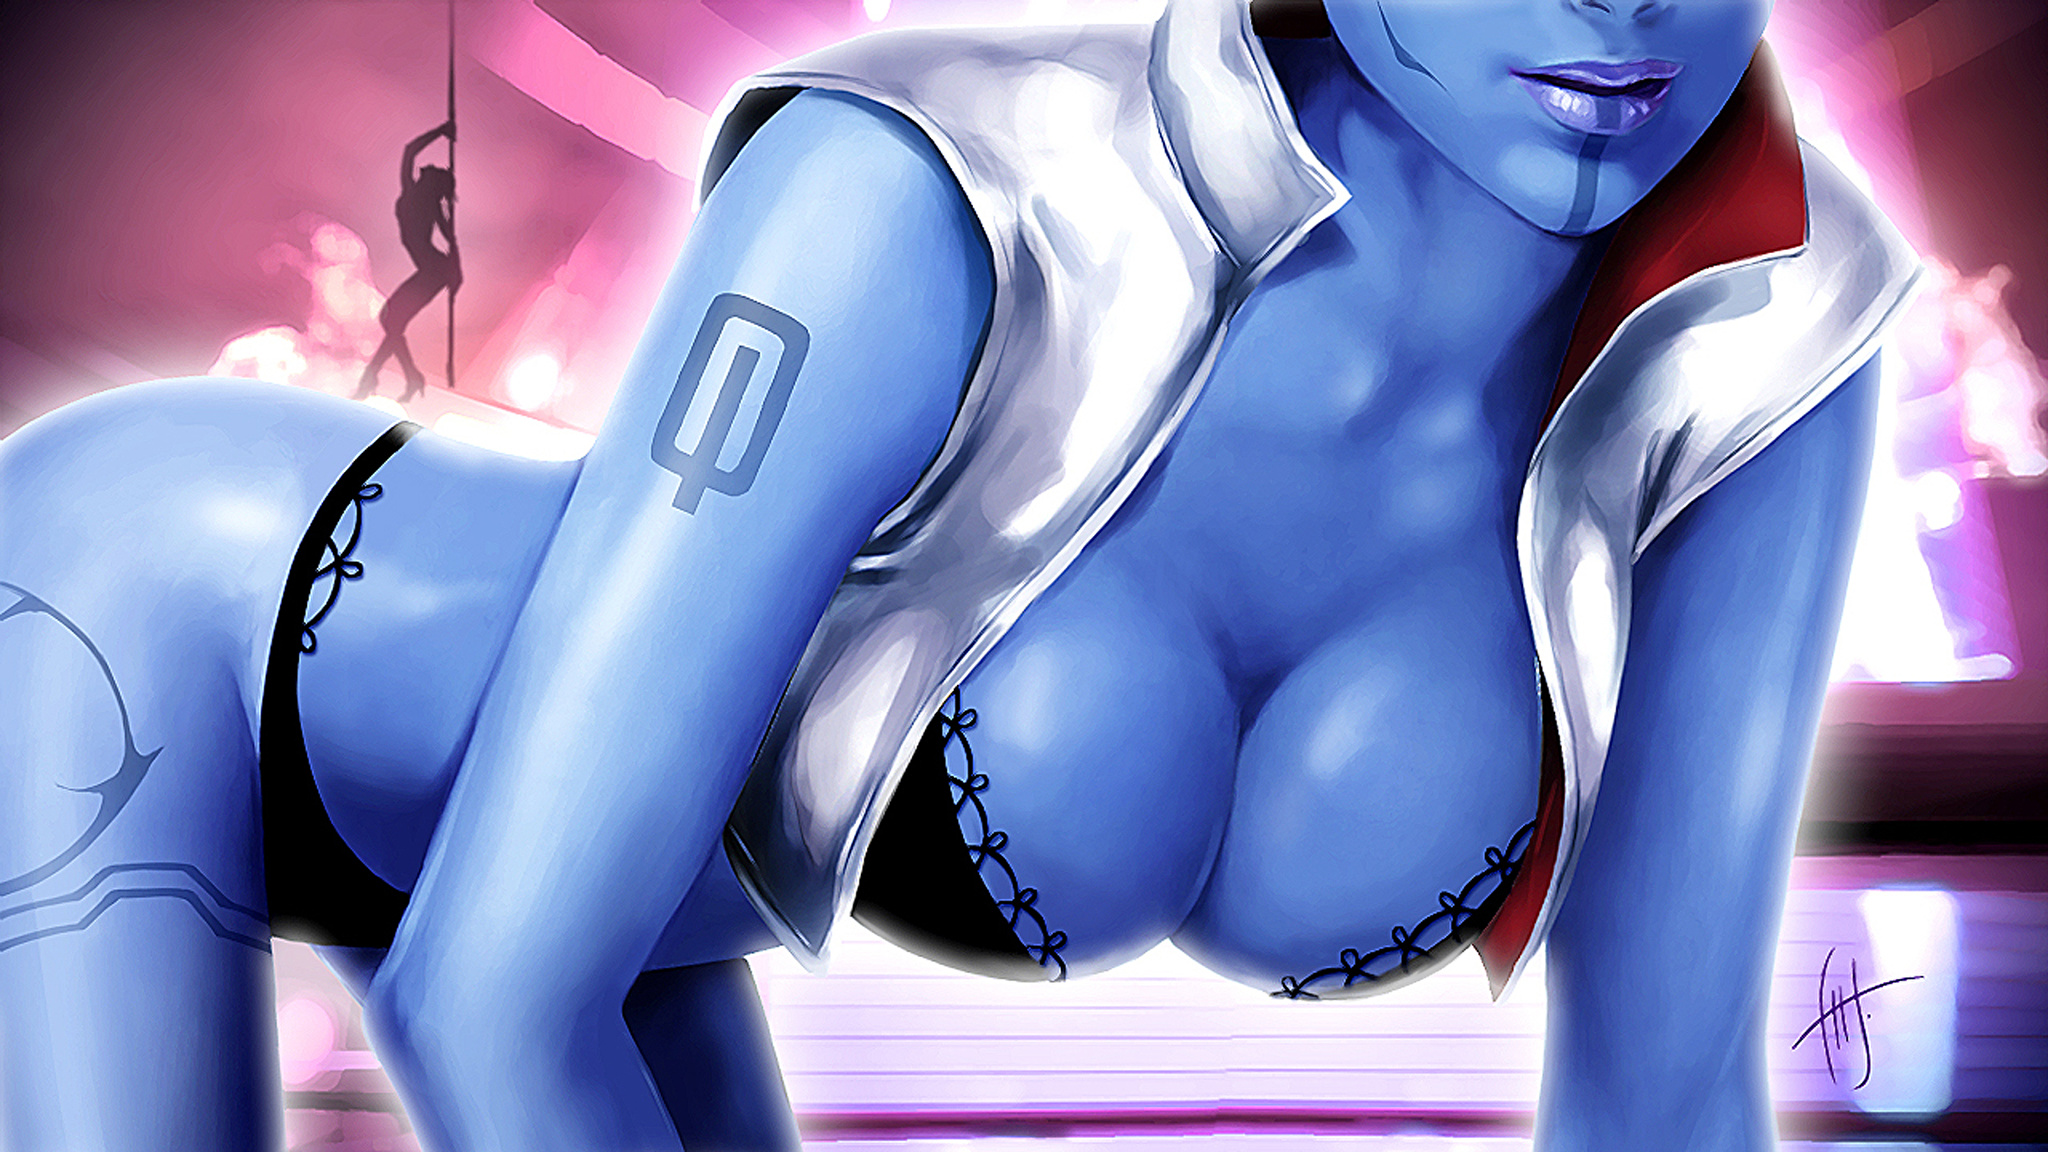 Mass effect 3 porn naked scenes